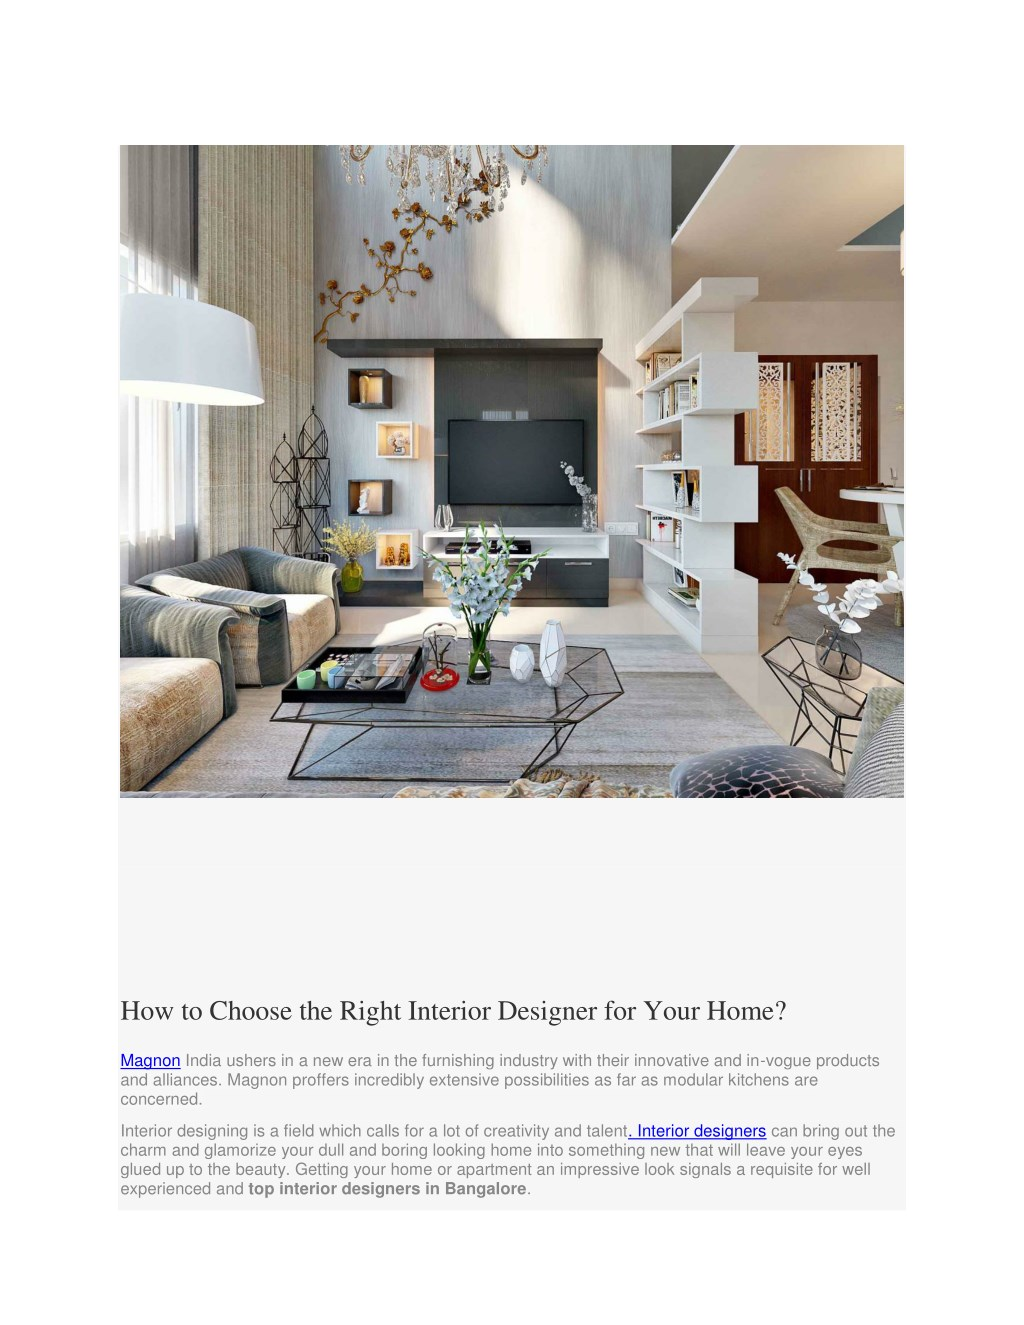 Ppt Best Interior Design Firms In Bangalore Powerpoint Presentation Free Download Id 7839207